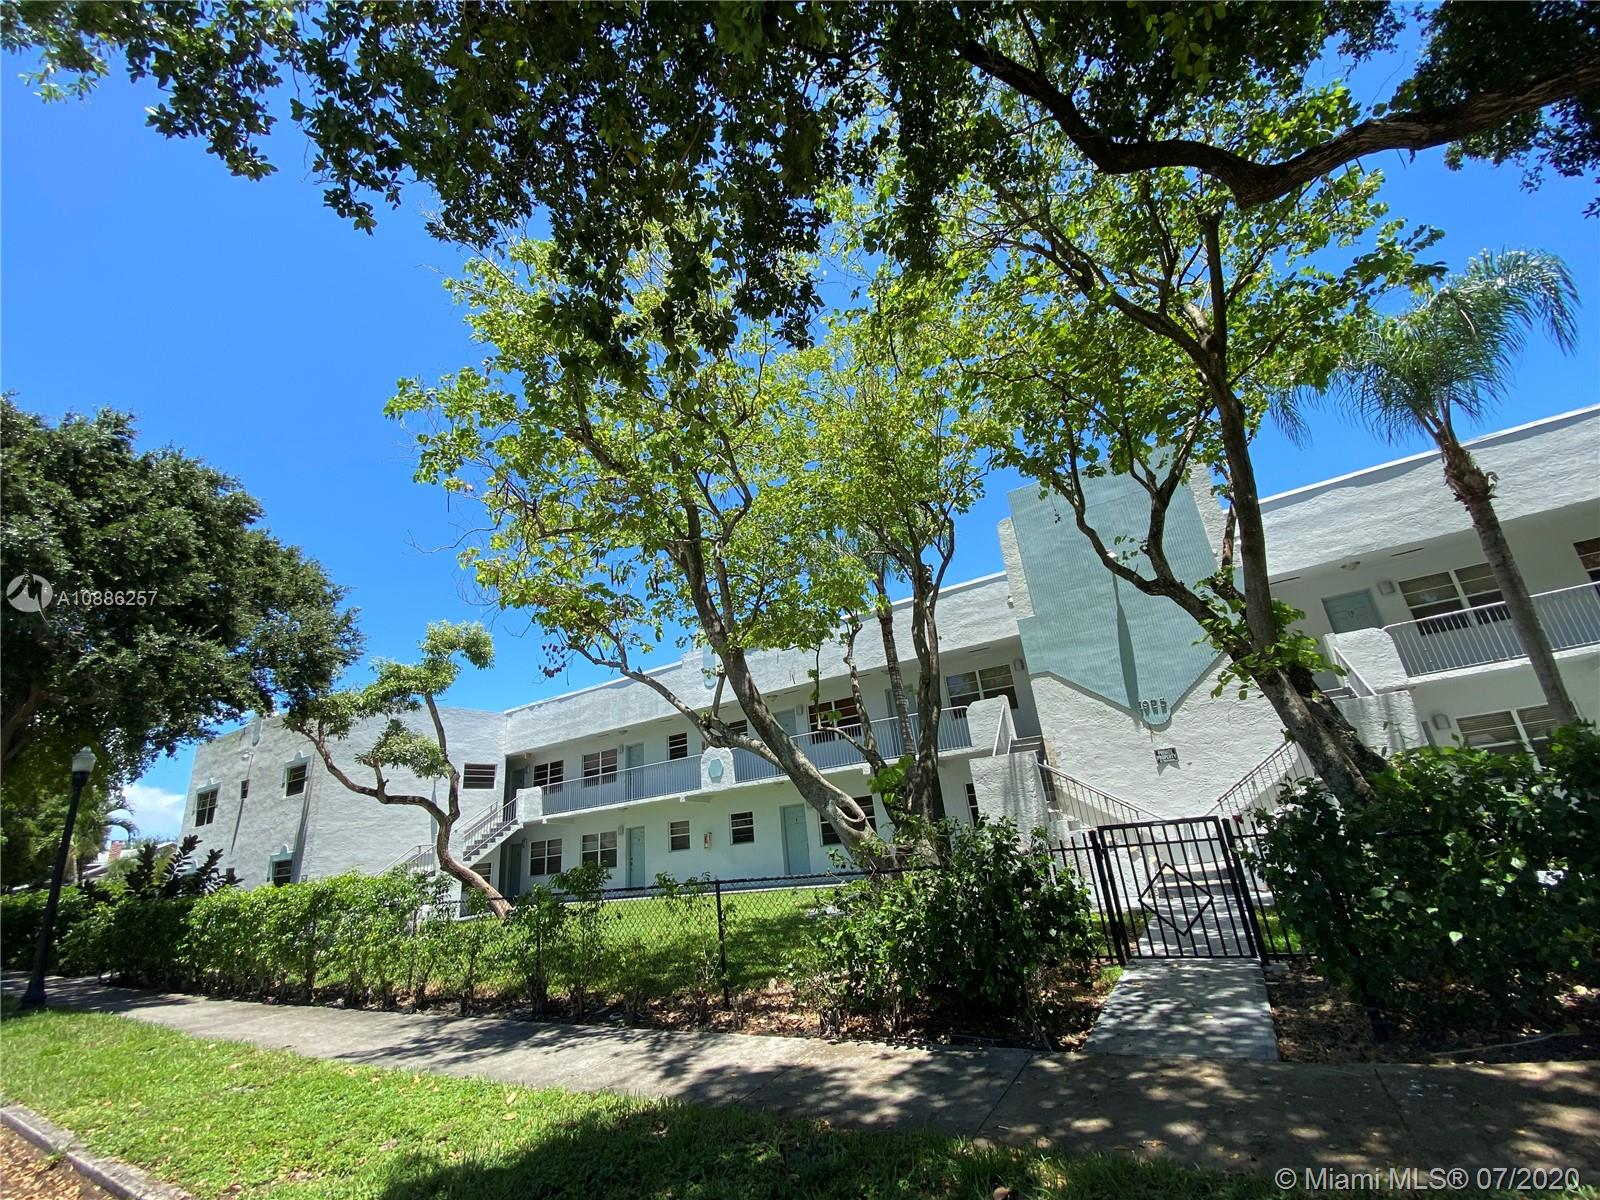 1925  Madison St #11 For Sale A10886257, FL